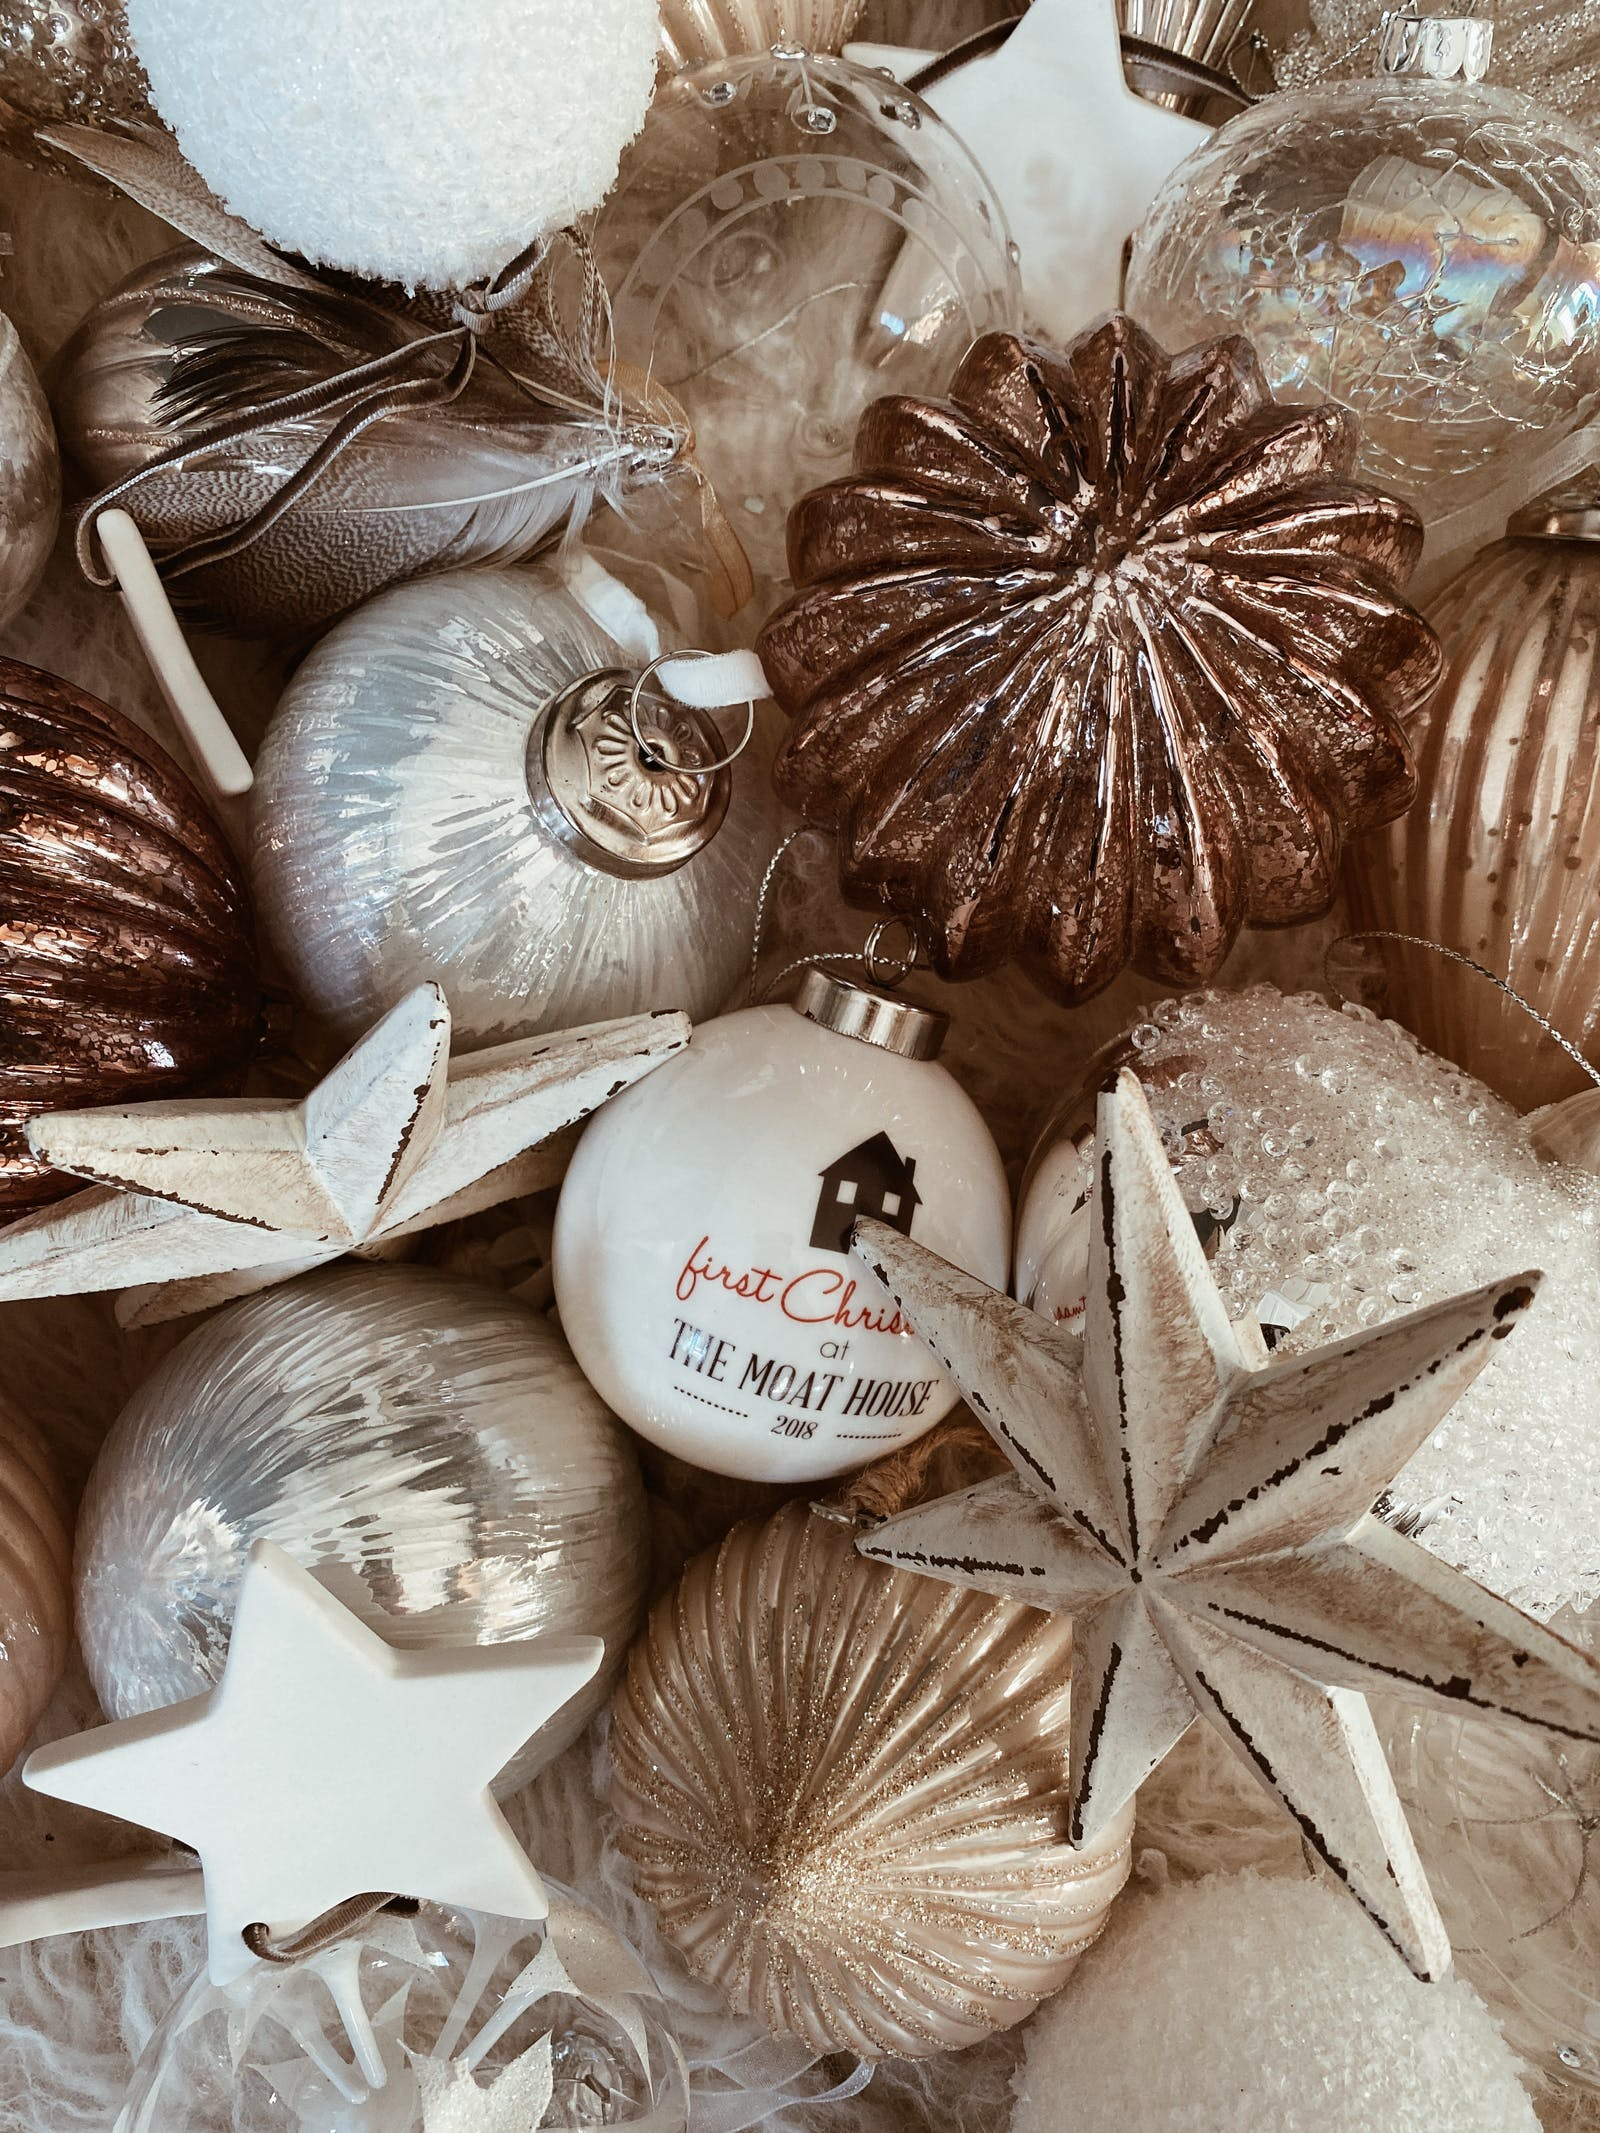 An assortment of bronze and white baubles